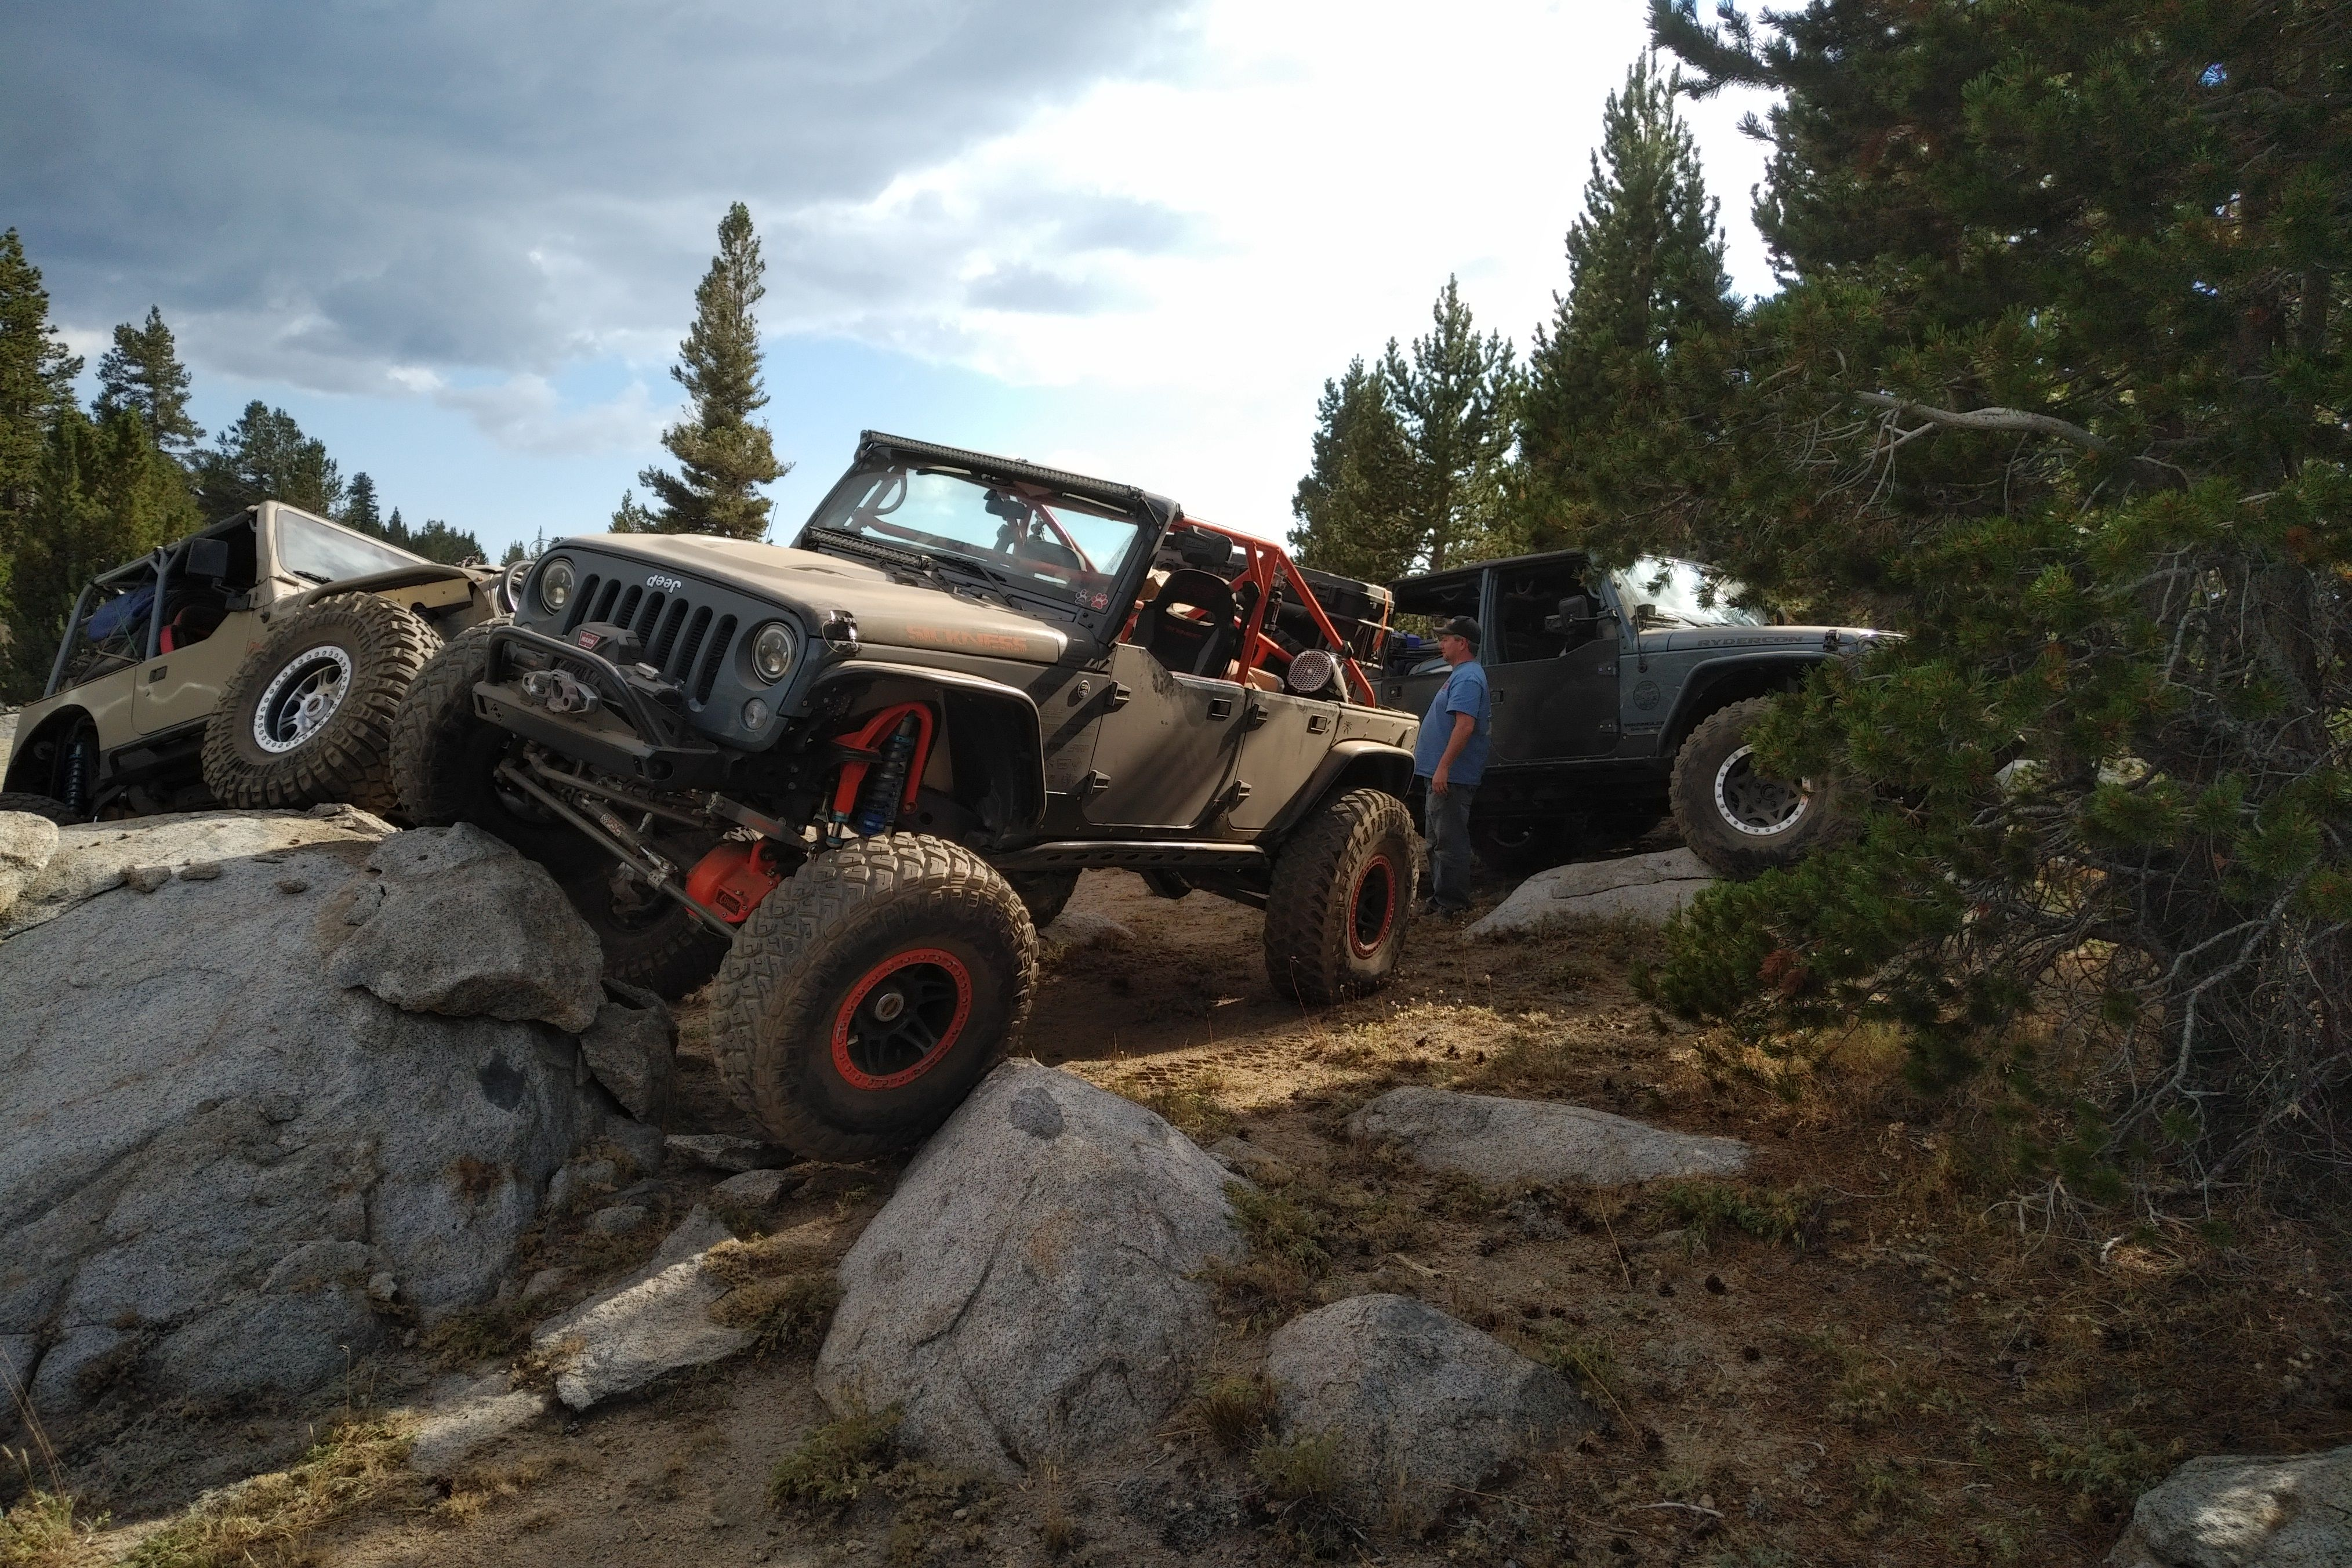 Pin on A OFFROAD & OUTDOORS COLLECTION